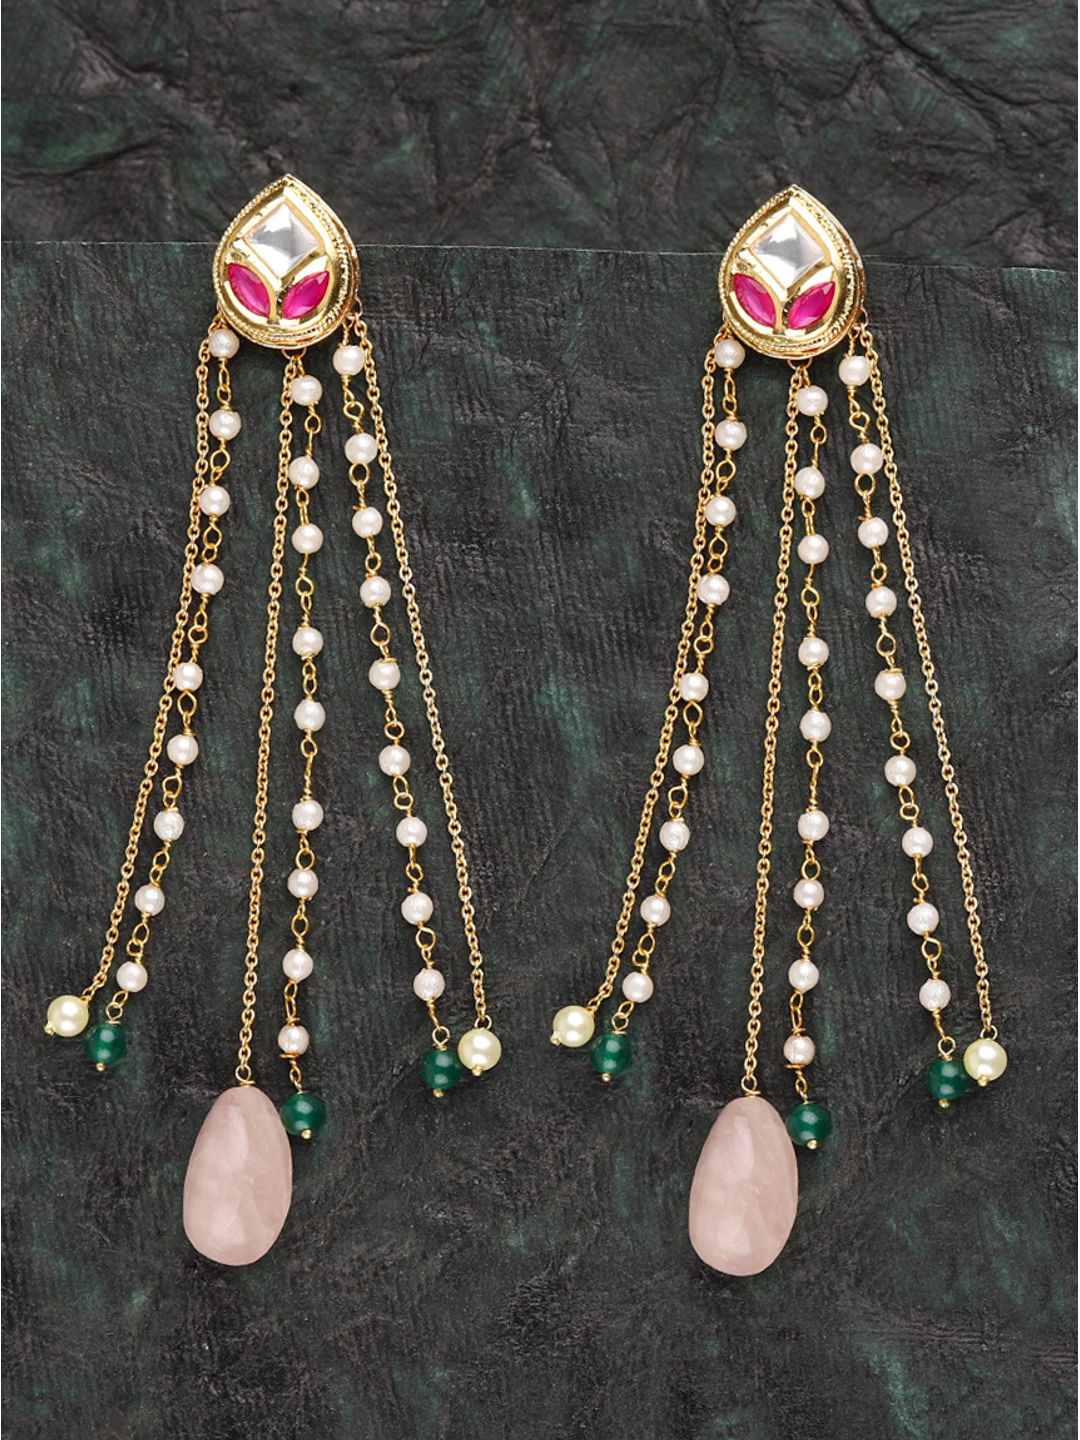 Buy Pink Party Earrings Online at Best Prices - Jewellery ...